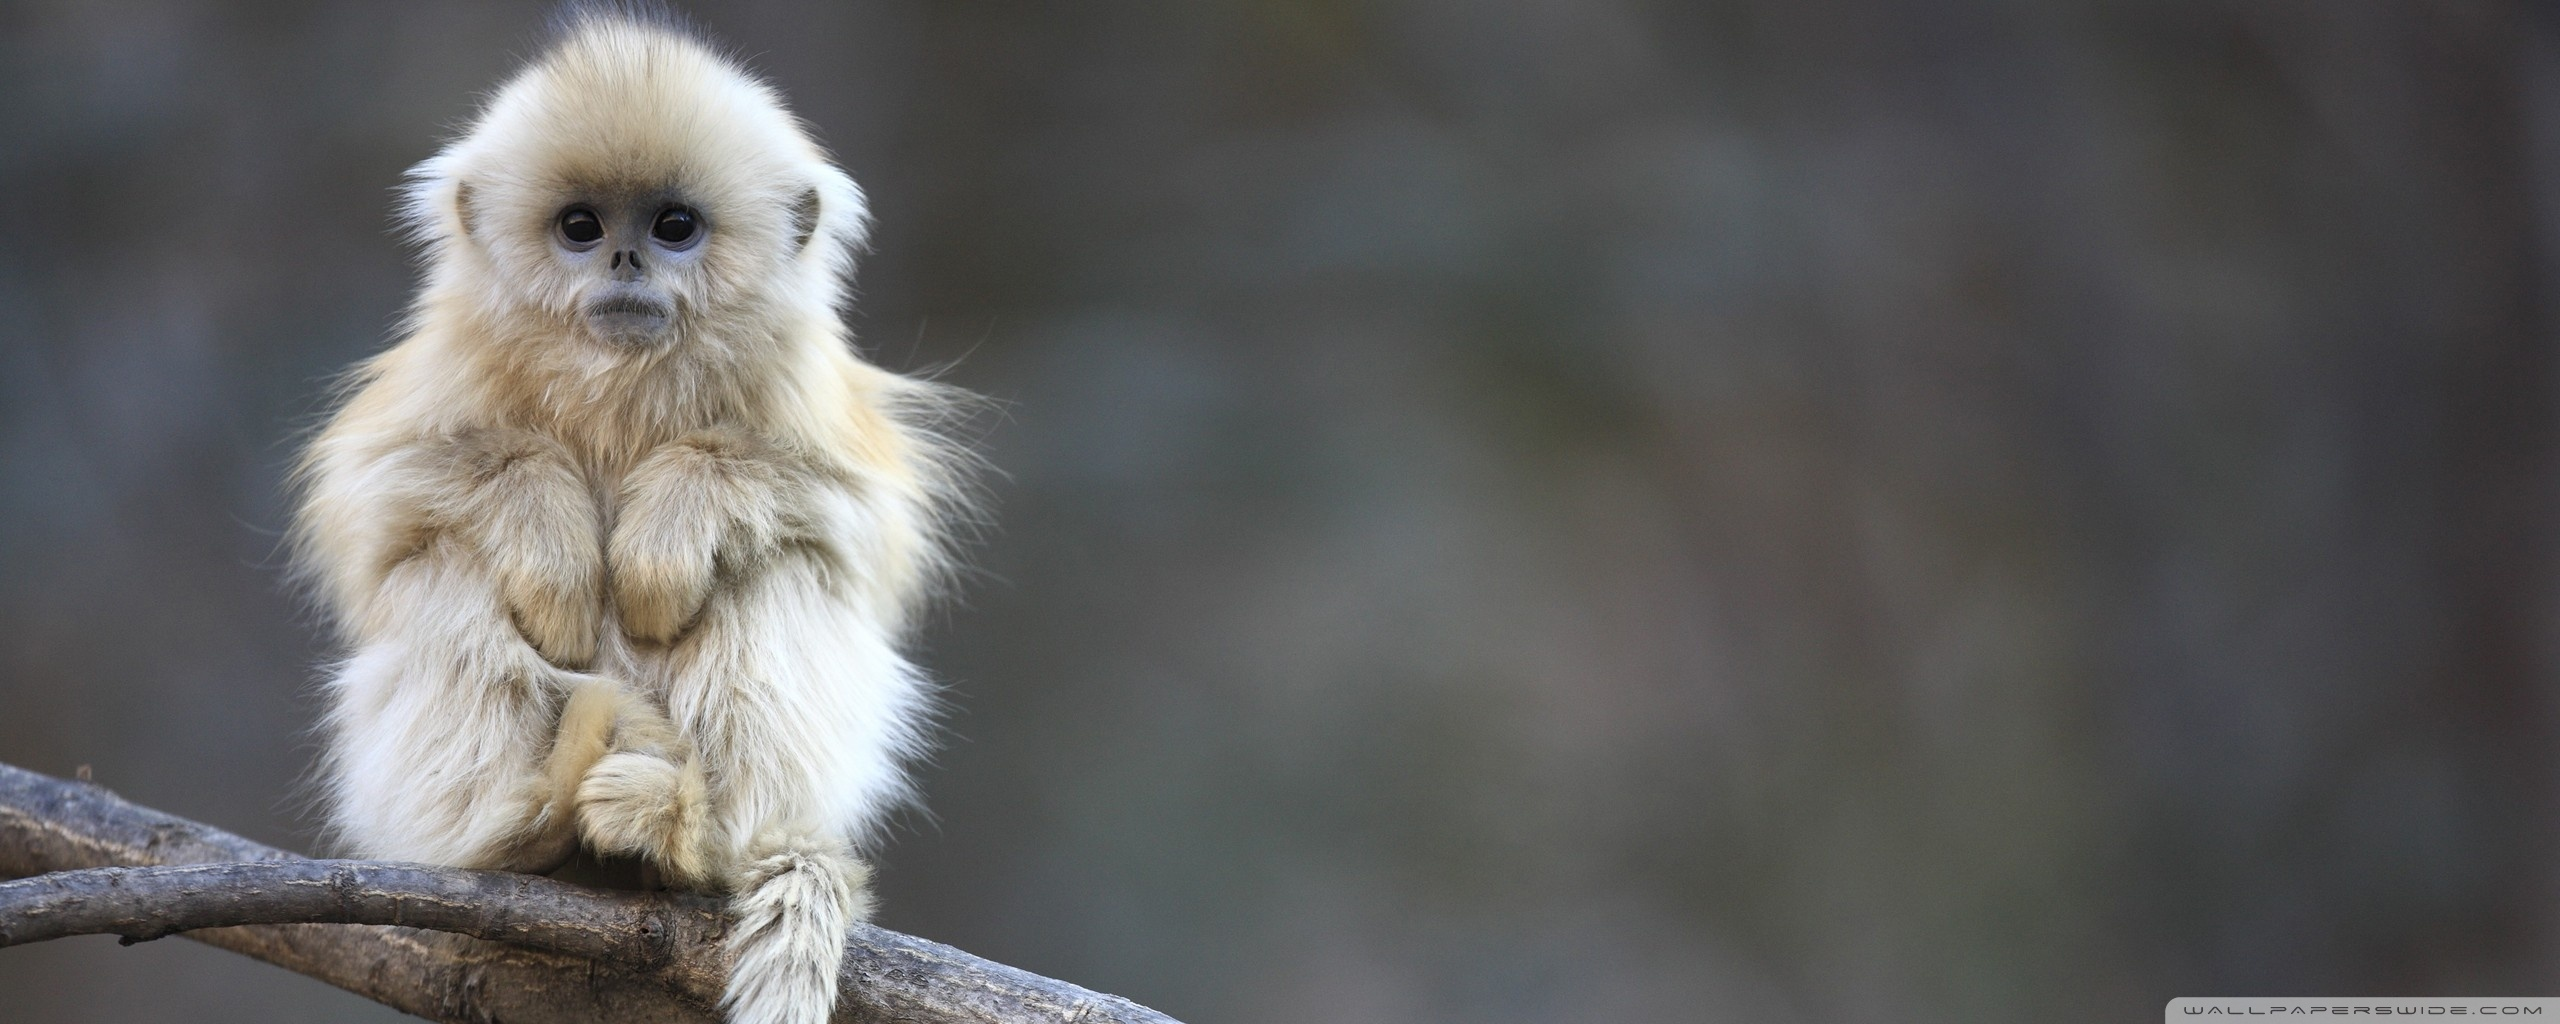 White Monkey HD desktop wallpaper : High Definition : Fullscreen